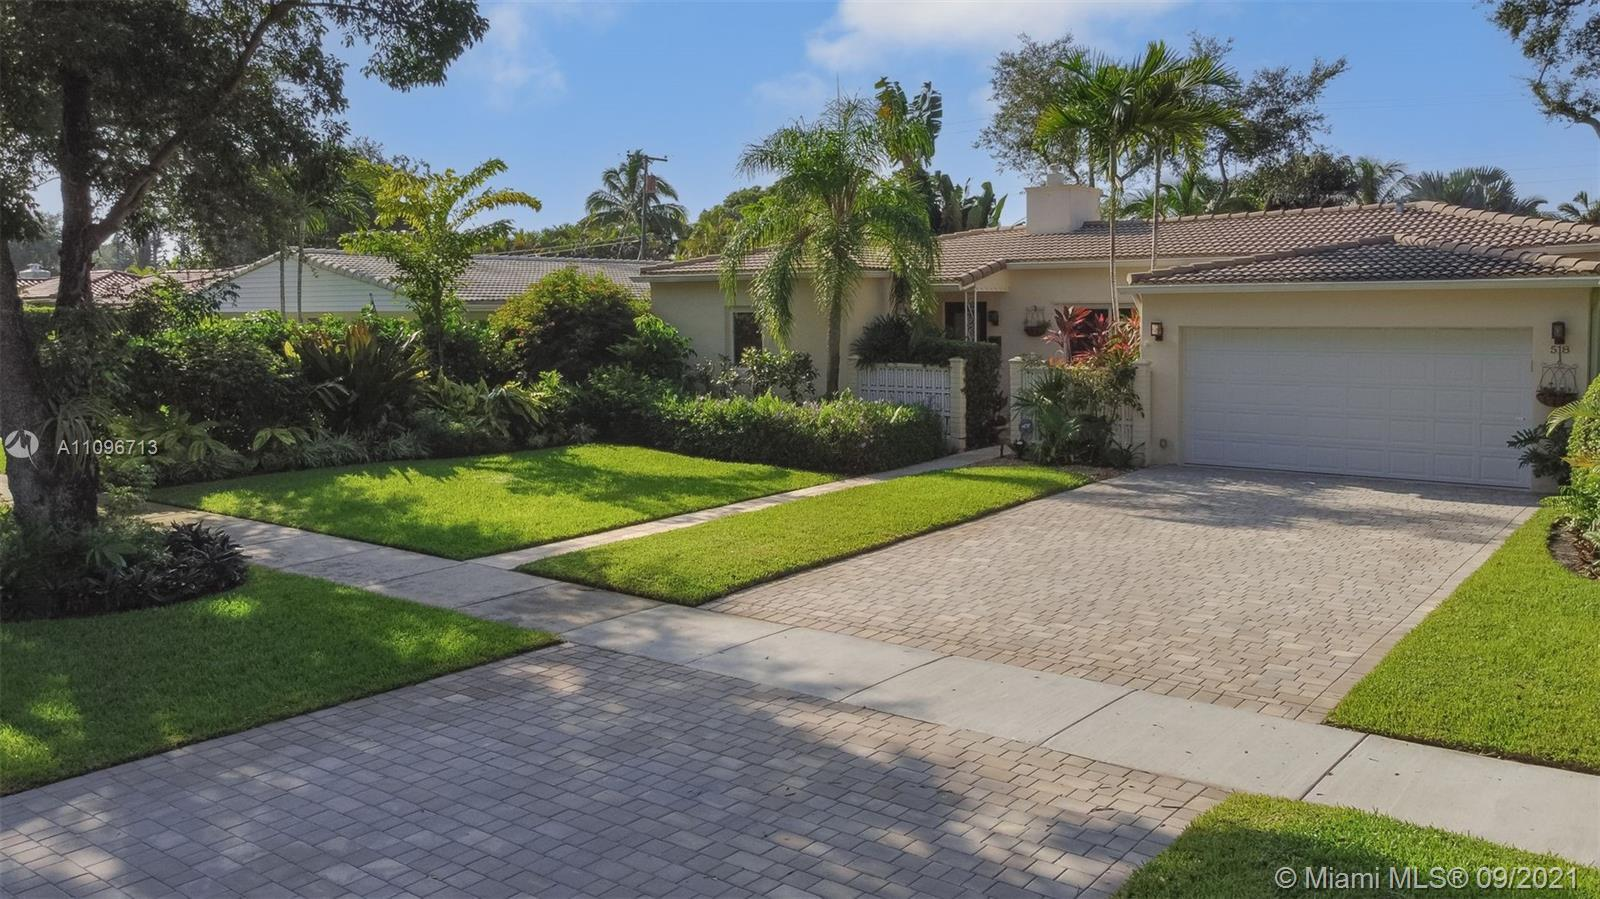 4 BEDROOMS AND 3 FULL BATHS IN CENTRAL MIAMI SHORES.  FENCED, PRIVATE YARD WITH HEATED POOL AND PATI